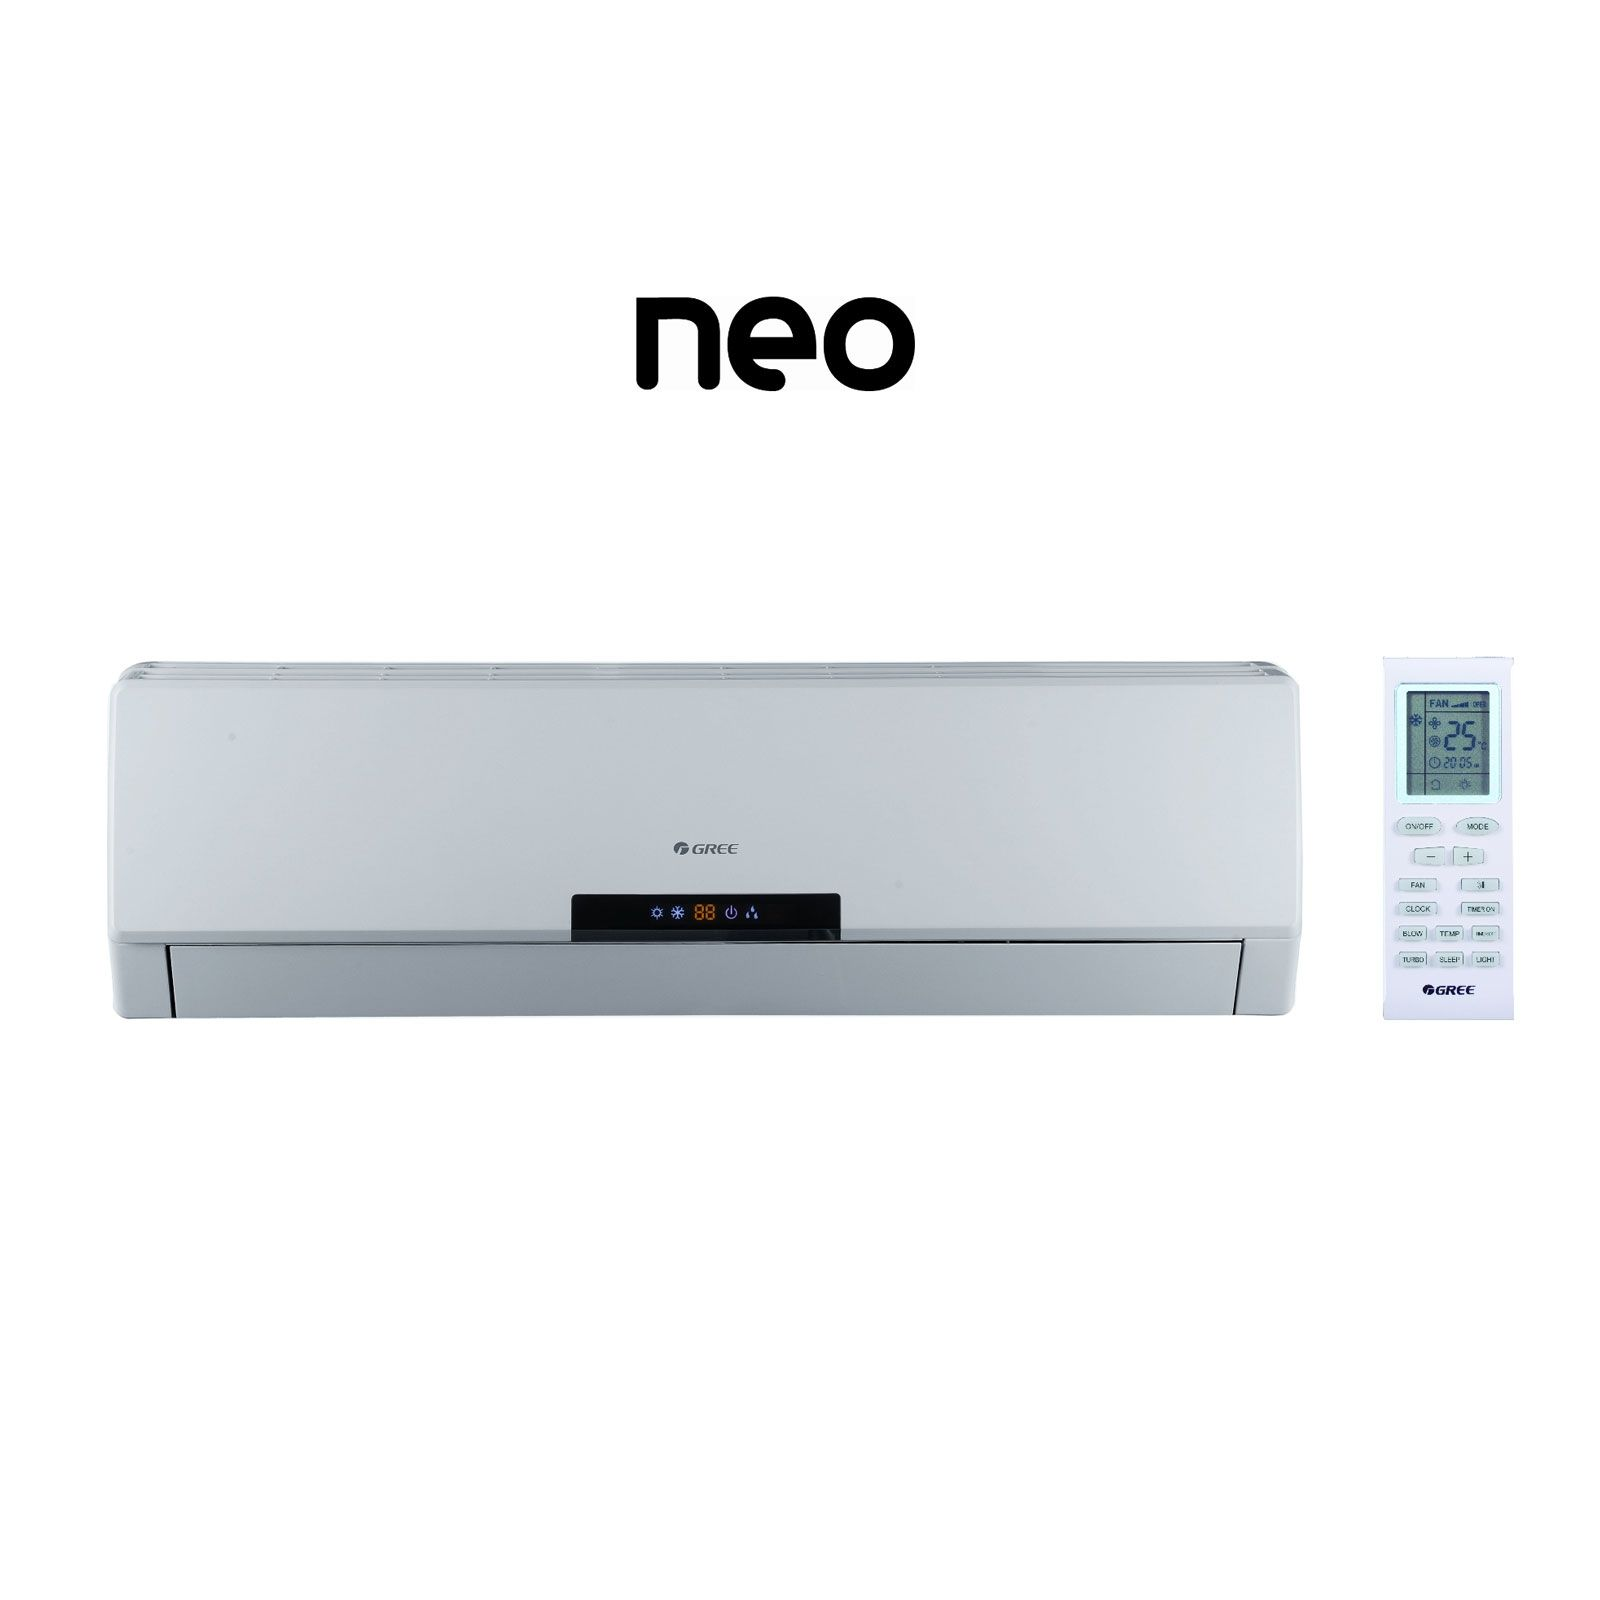 GREE NEO09HP230V1AH - 3/4 Ton 22 SEER NEO Ductless Mini-Split Indoor Unit 208-230 V